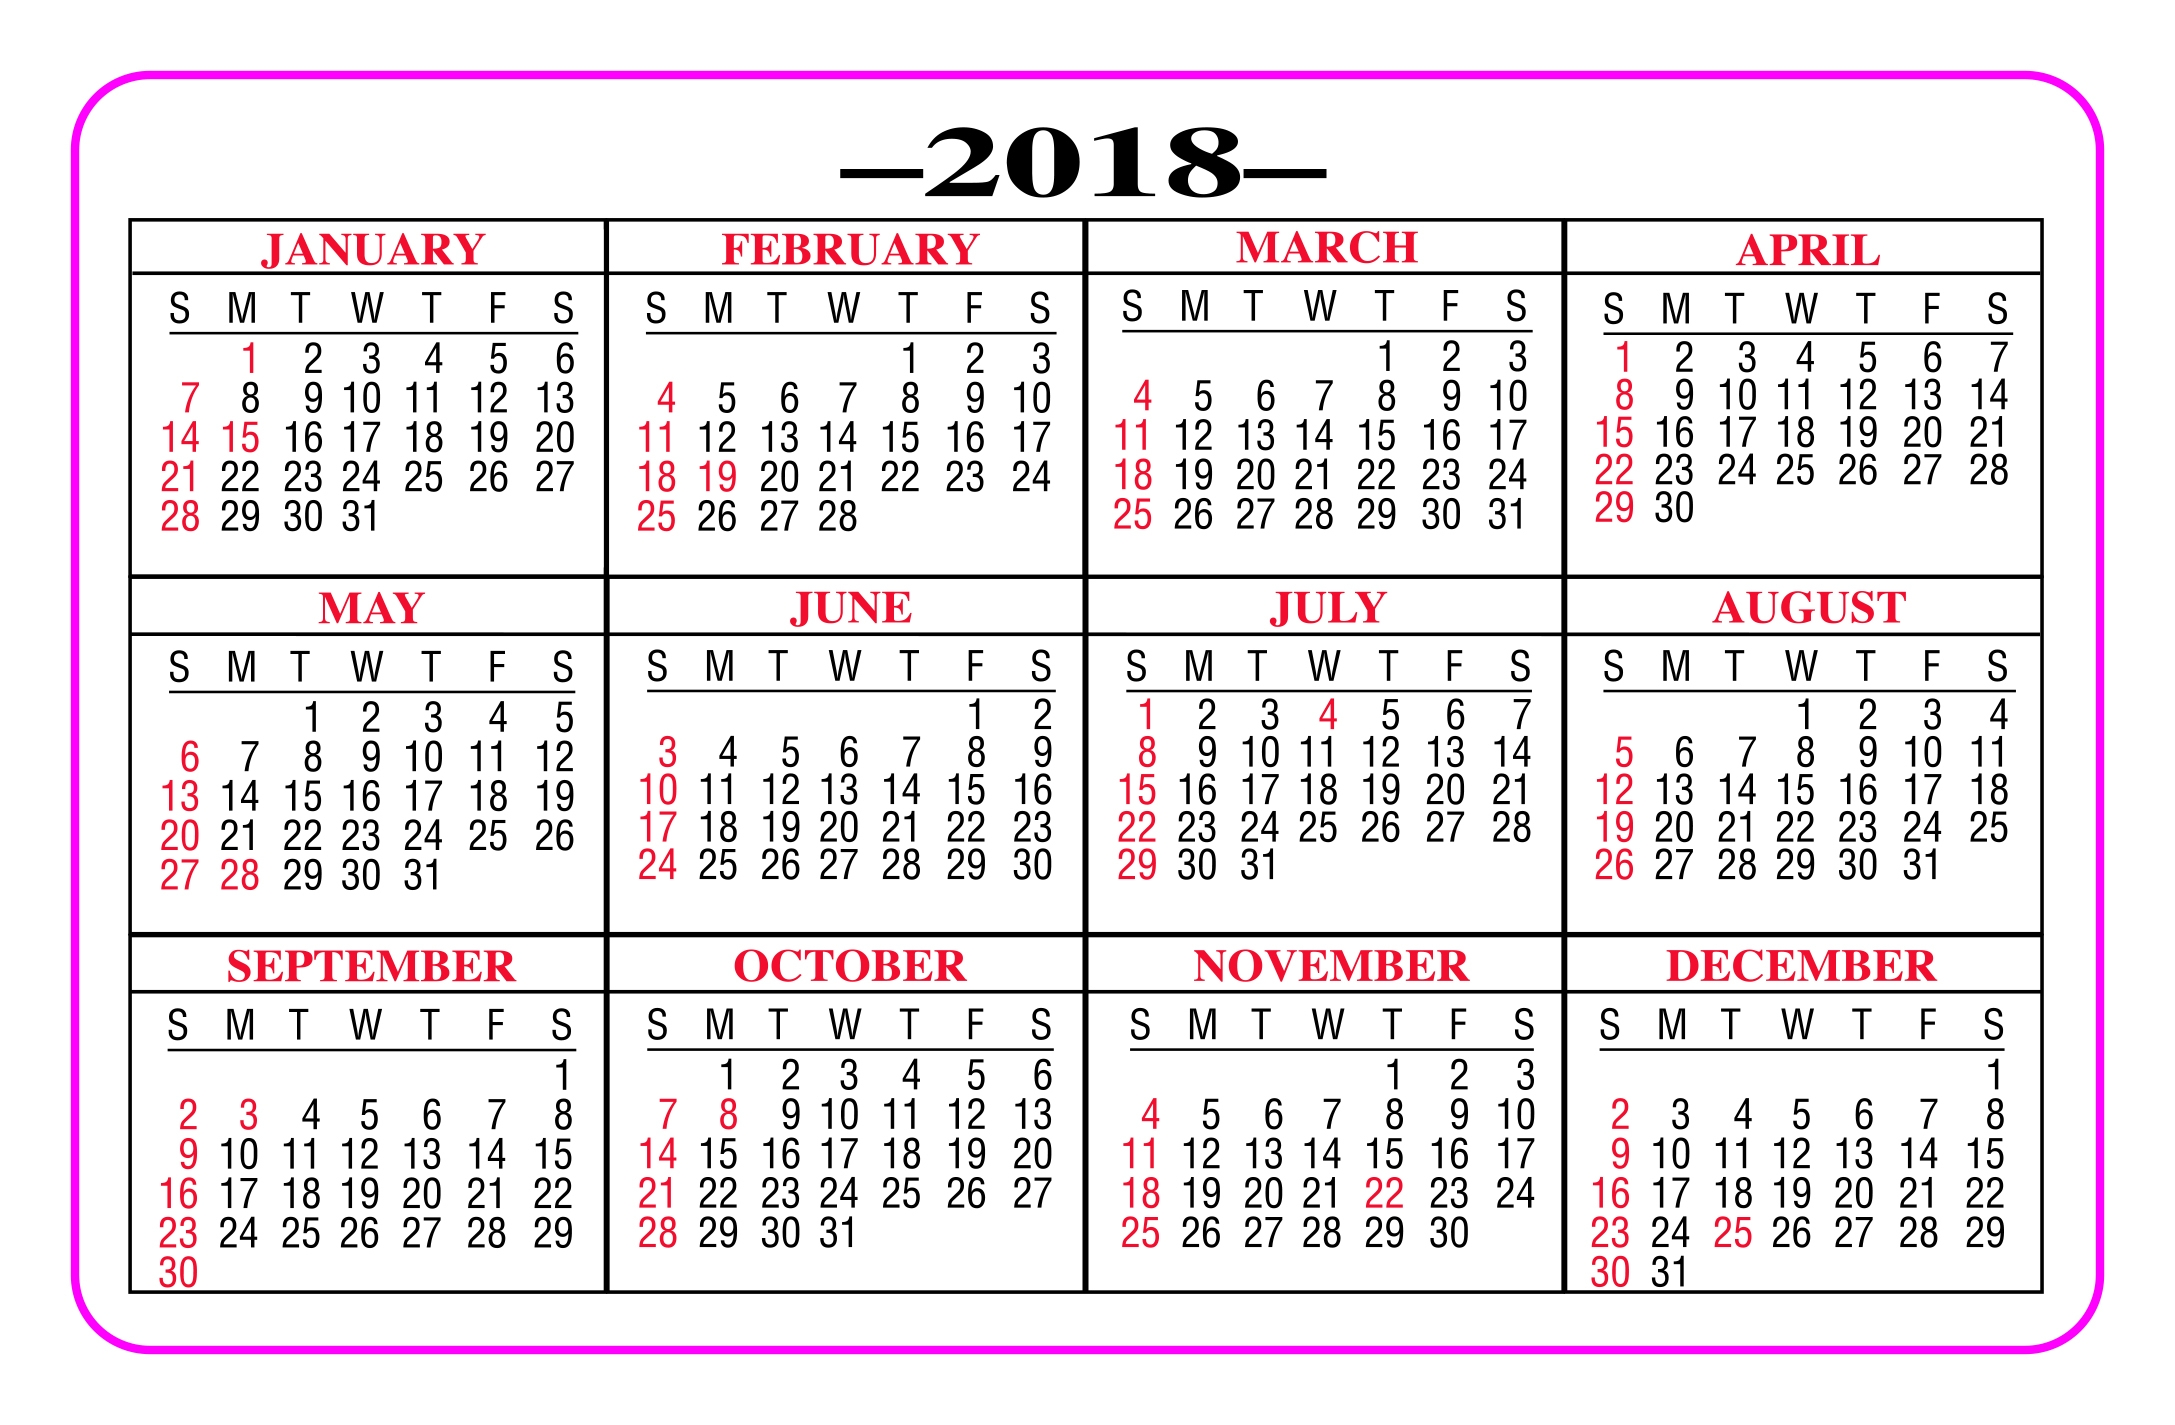 Promotional Laminated Wallet Cards Wallet Calendar Cards  Xjb